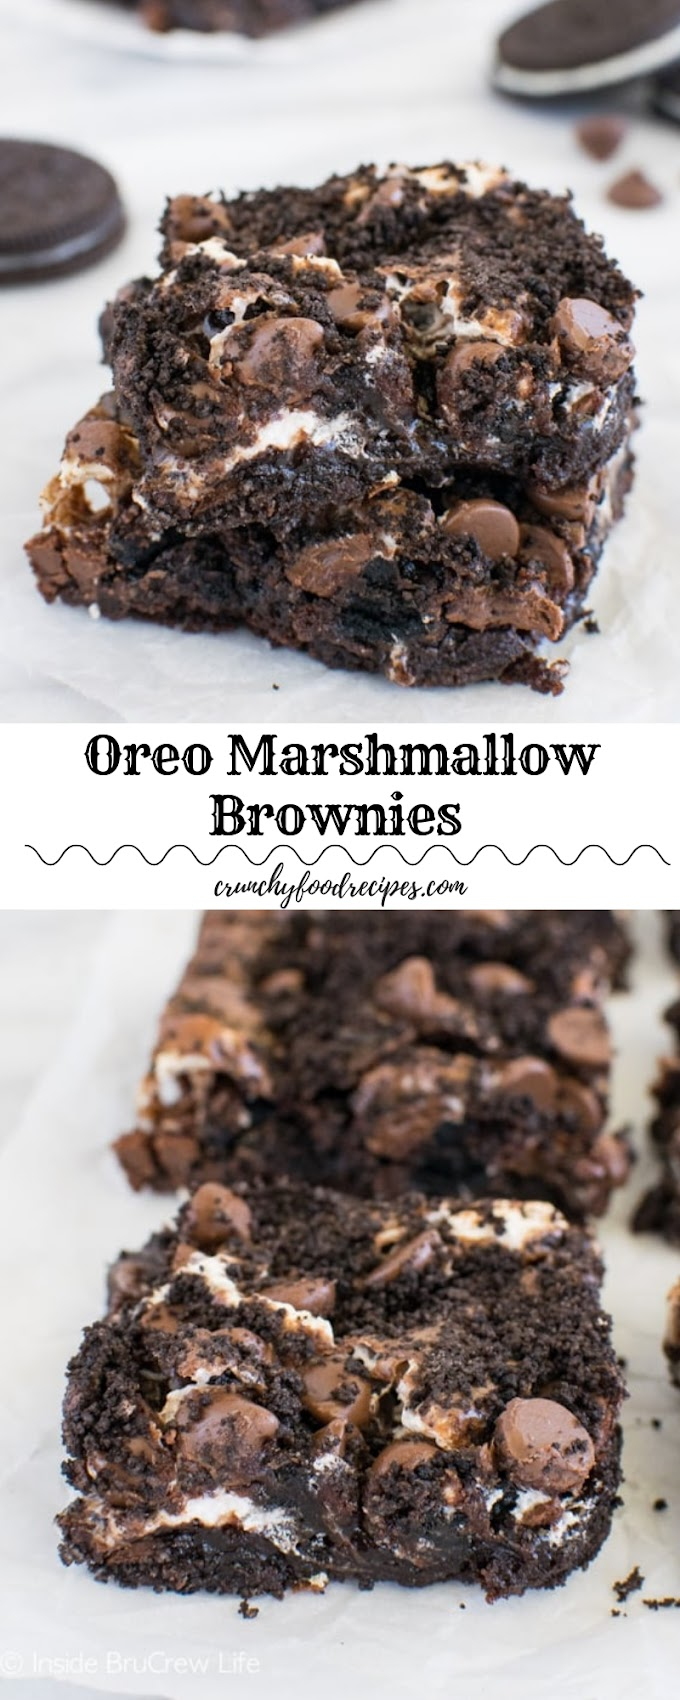 Oreo Marshmallow Brownies #christmas #dessert